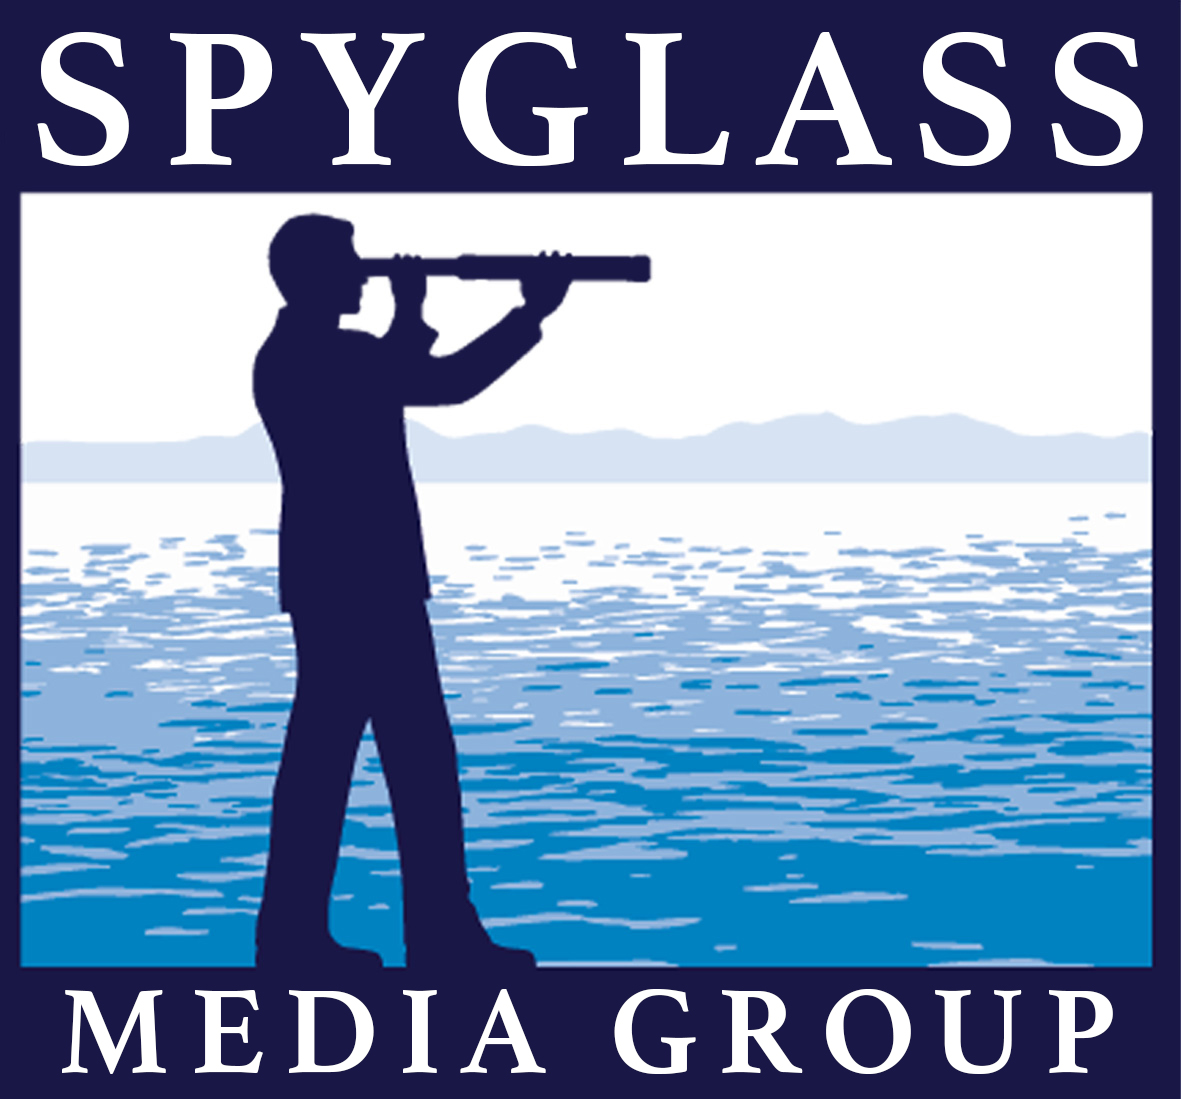 SPYGLASS MEDIA GROUP LAUNCHES IN PARTNERSHIP WITH LANTERN